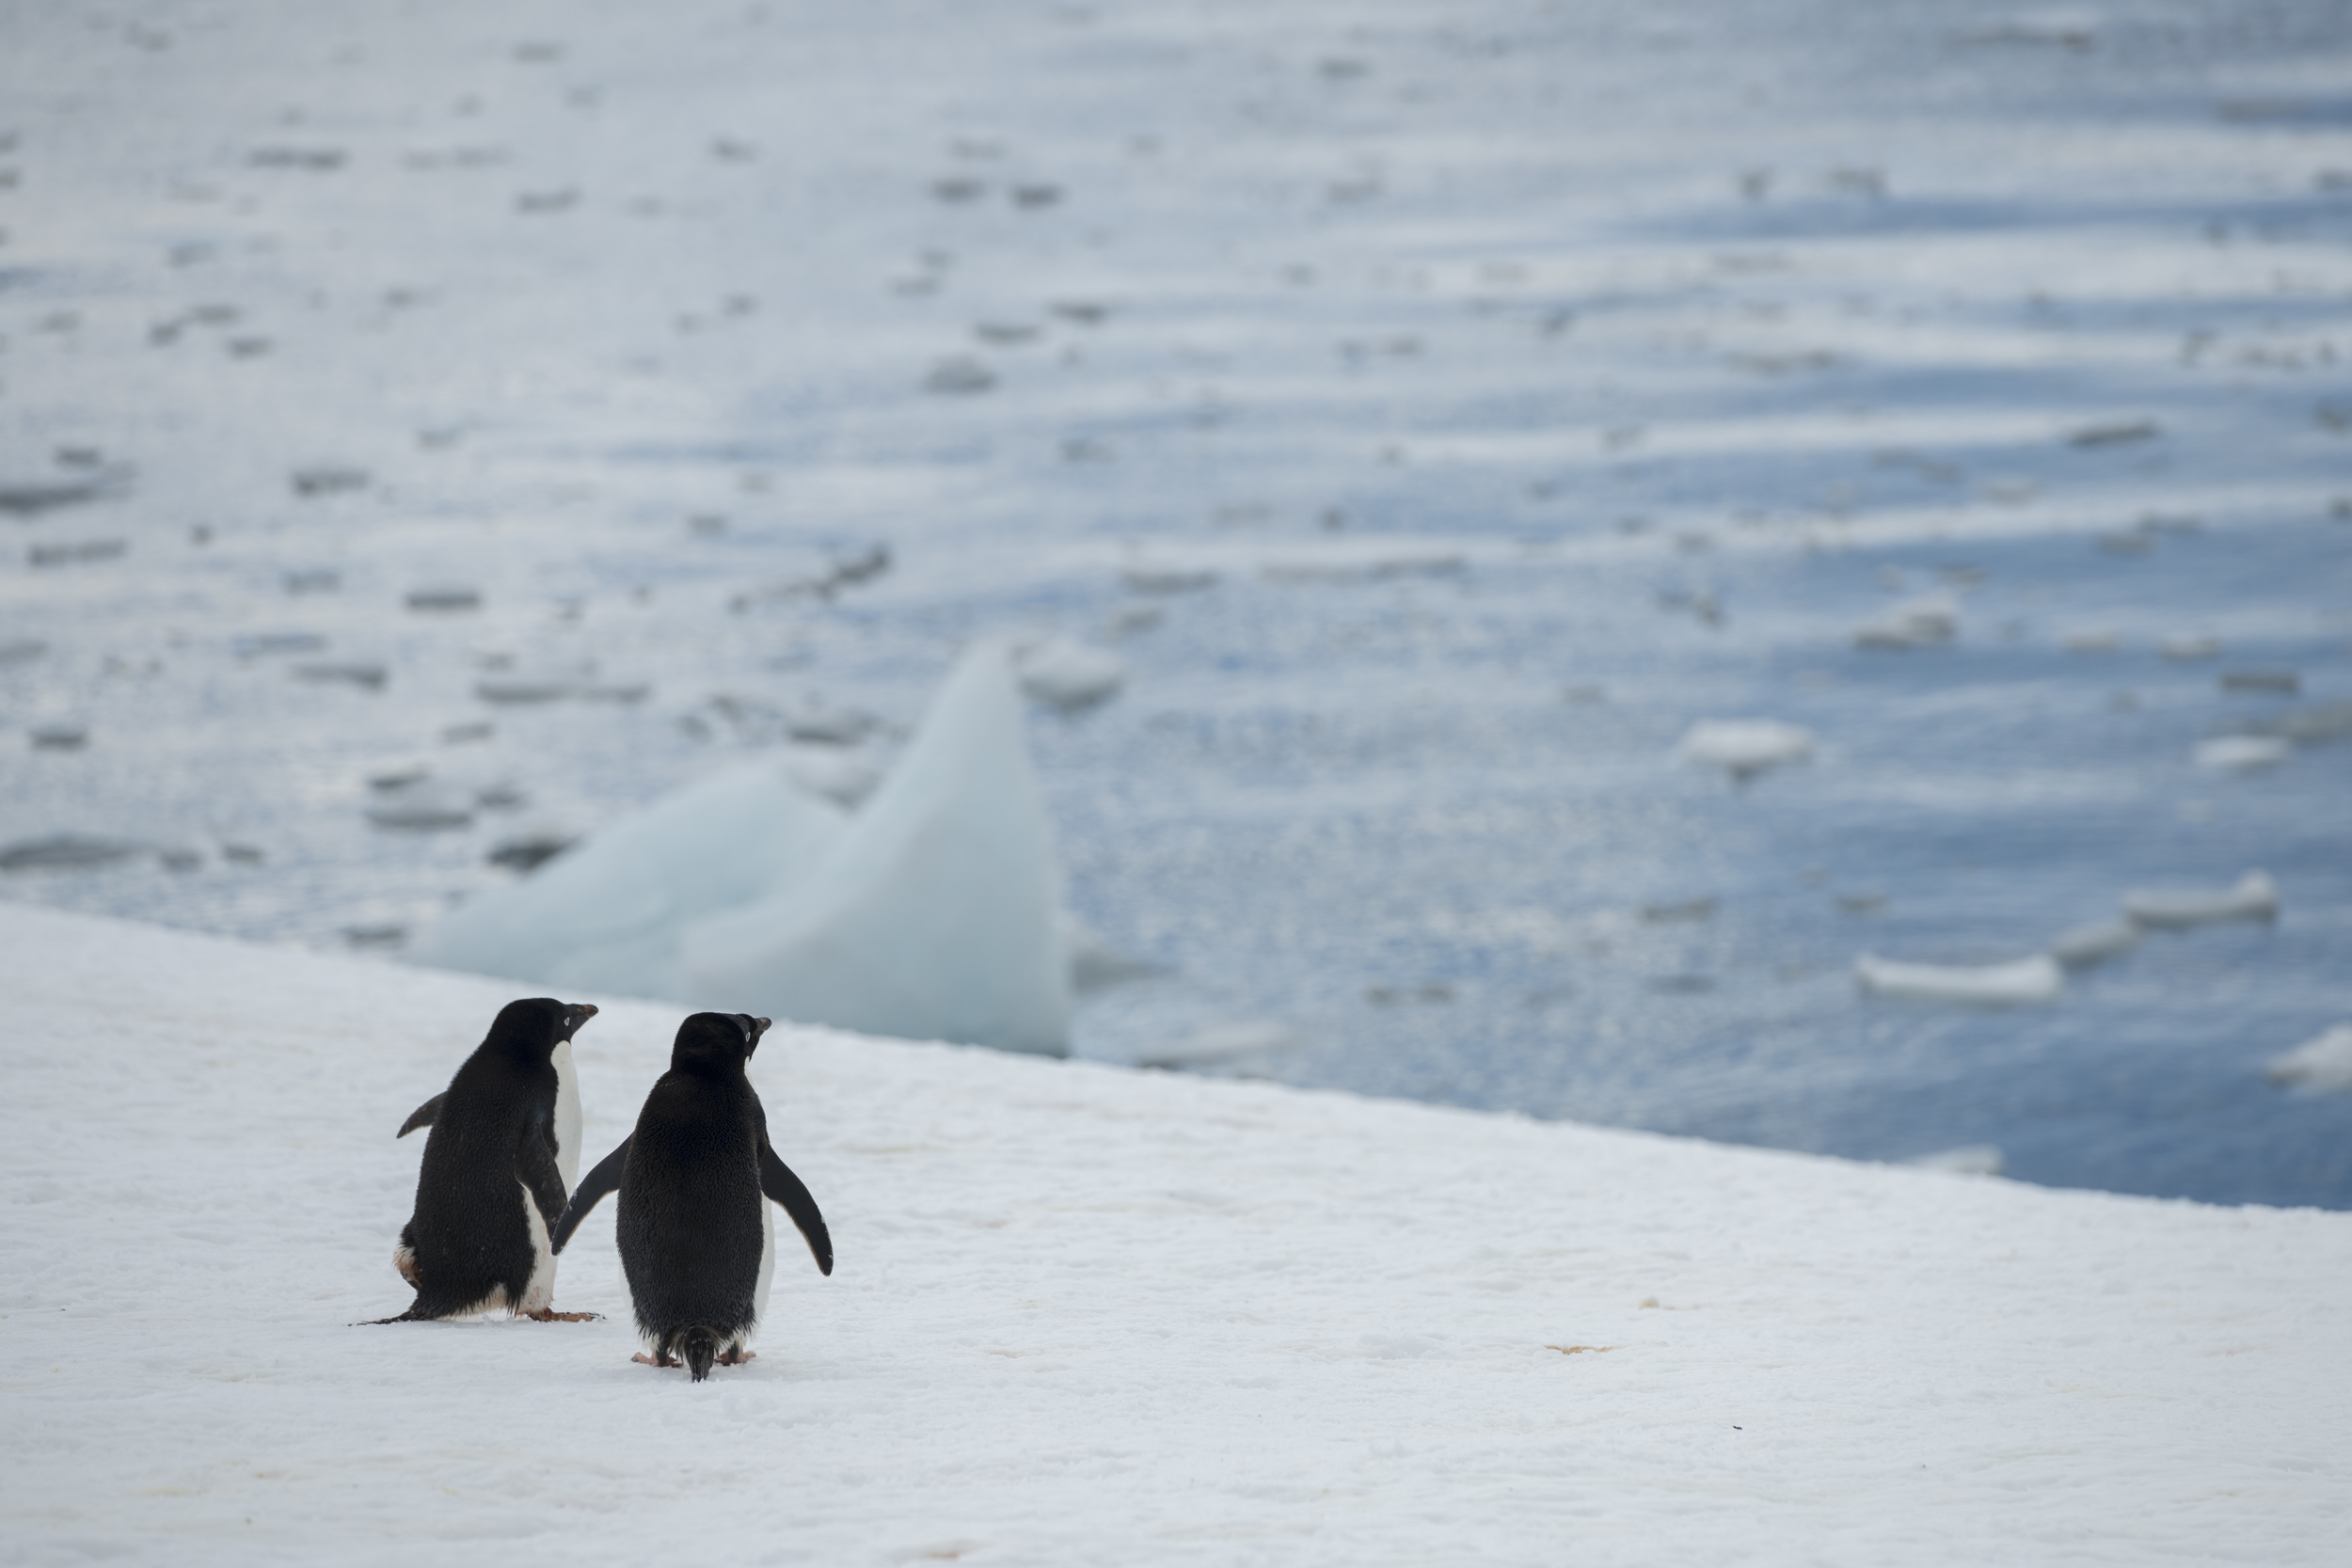 2 penguins on the edge of the ice